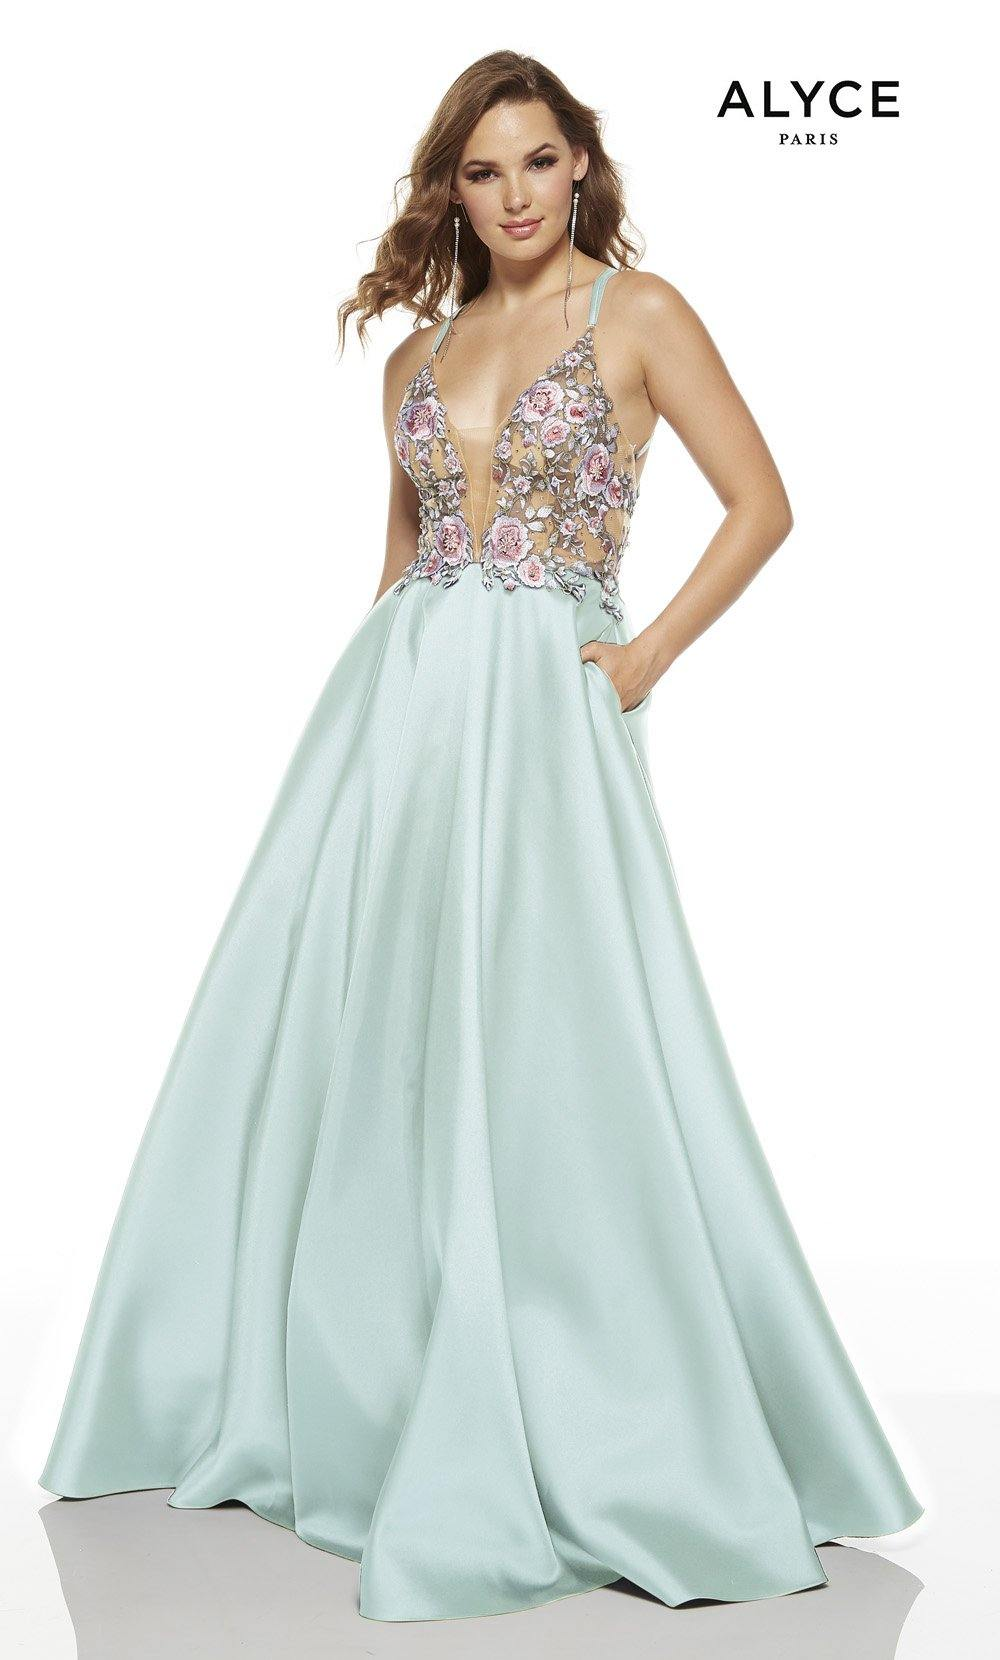 Sea Glass ball gown with pink floral embroidery on bodice, pockets and a plunging neckline